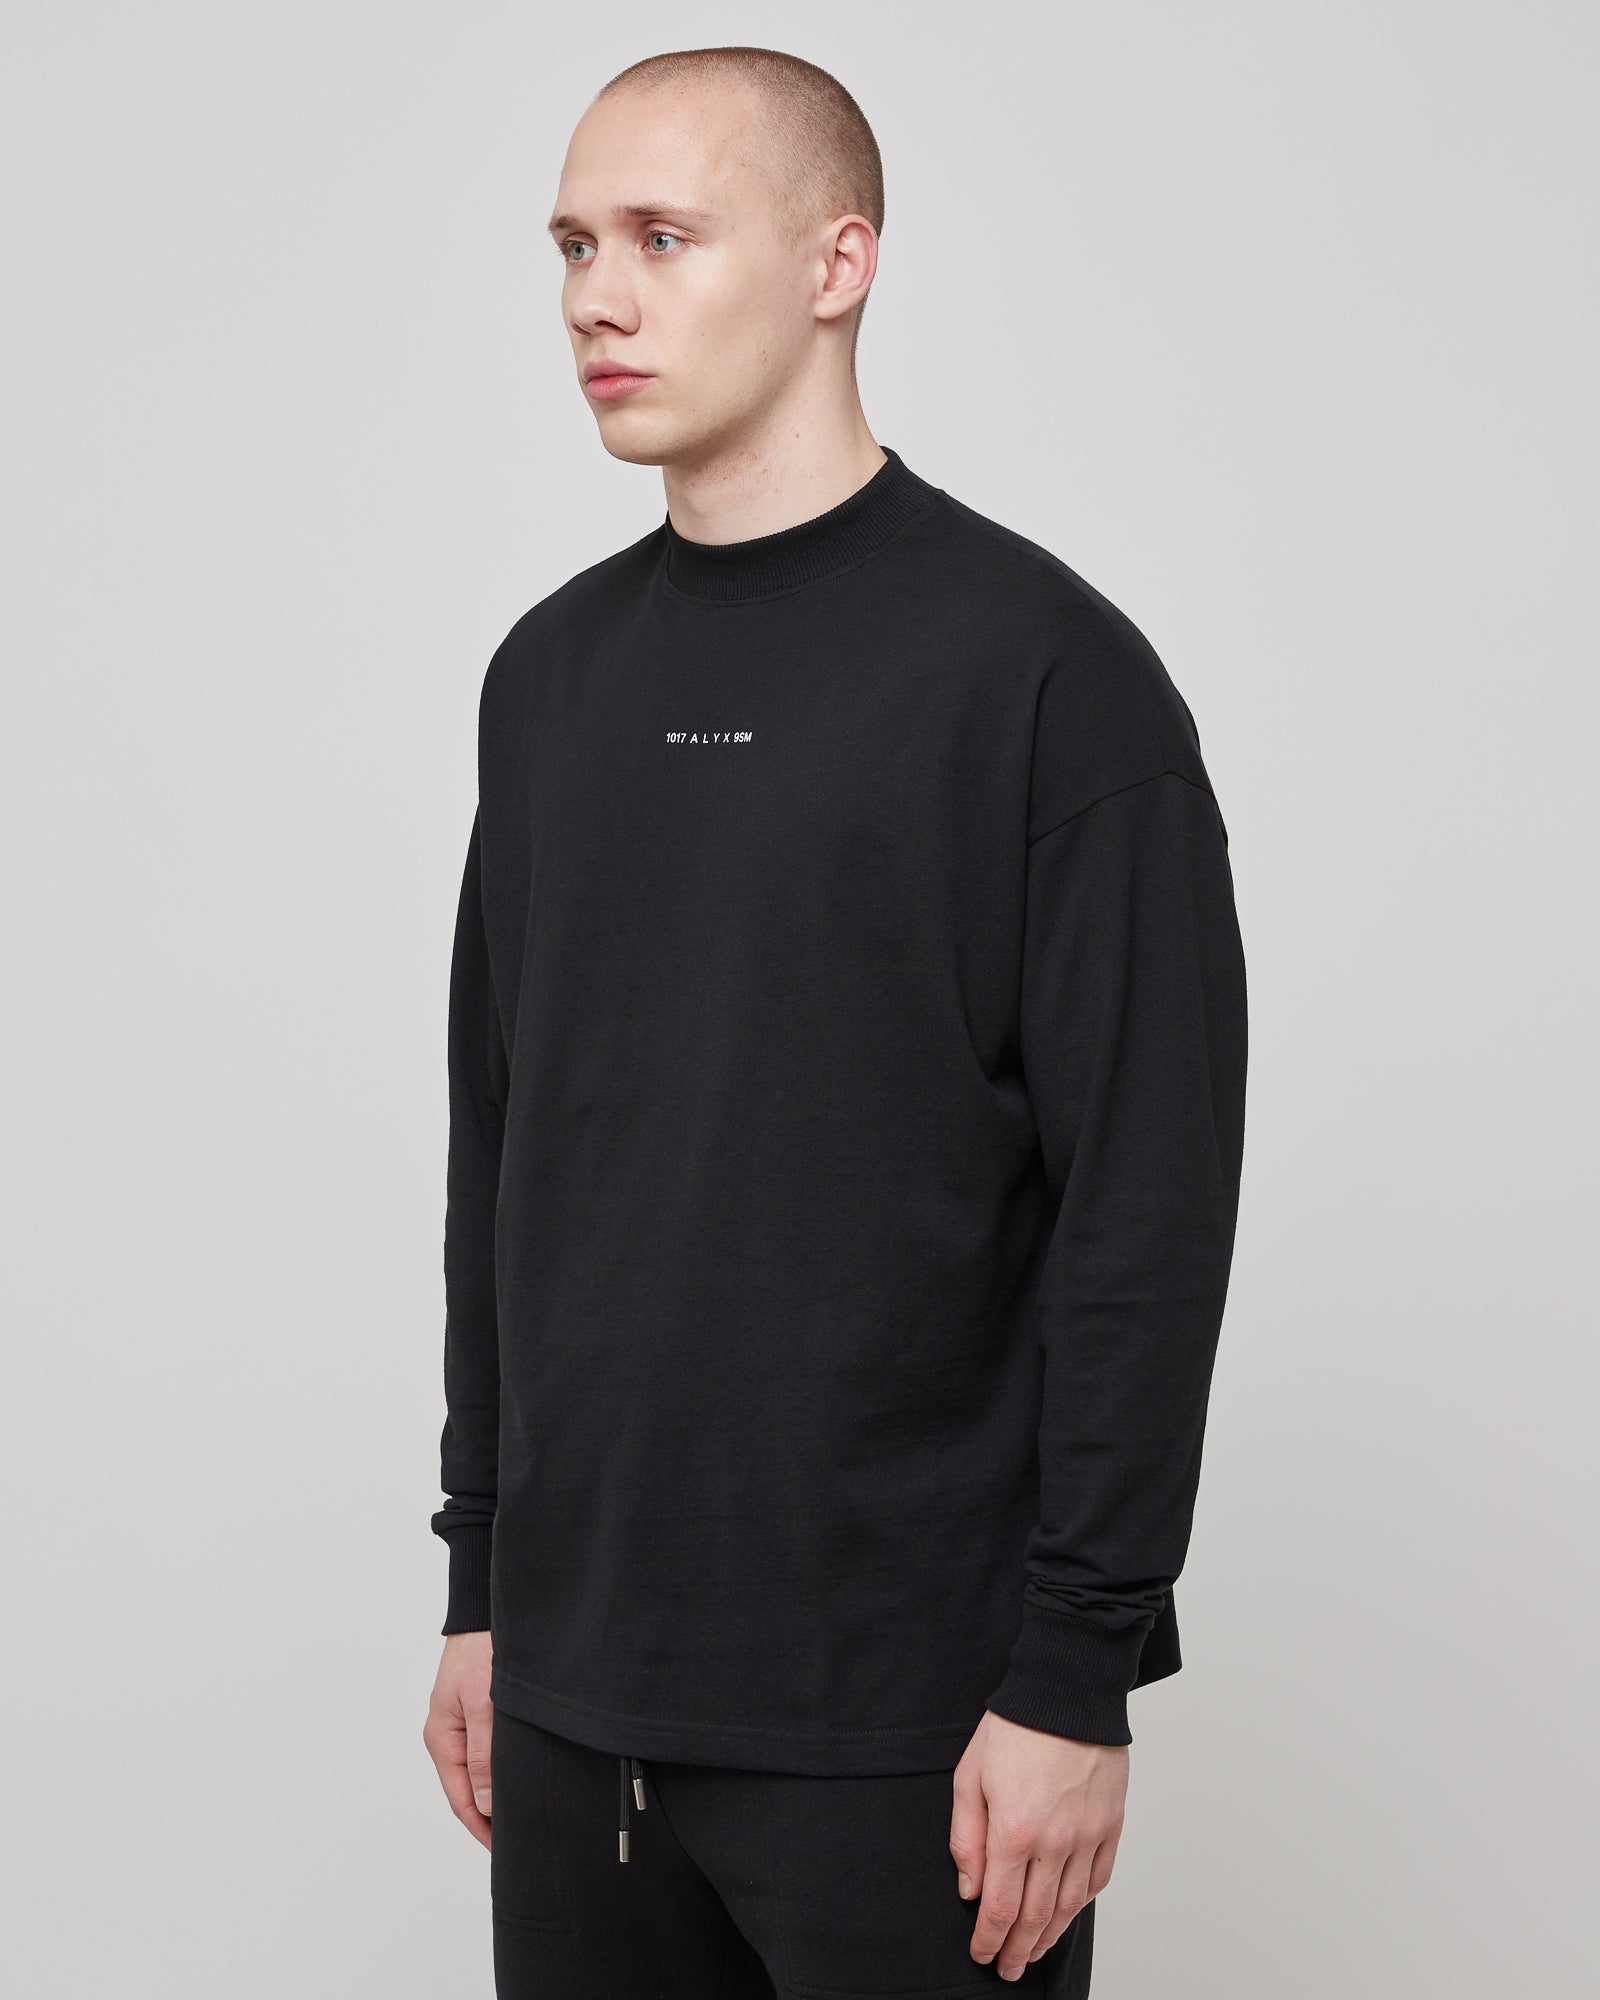 L/S T-Shirt in Black